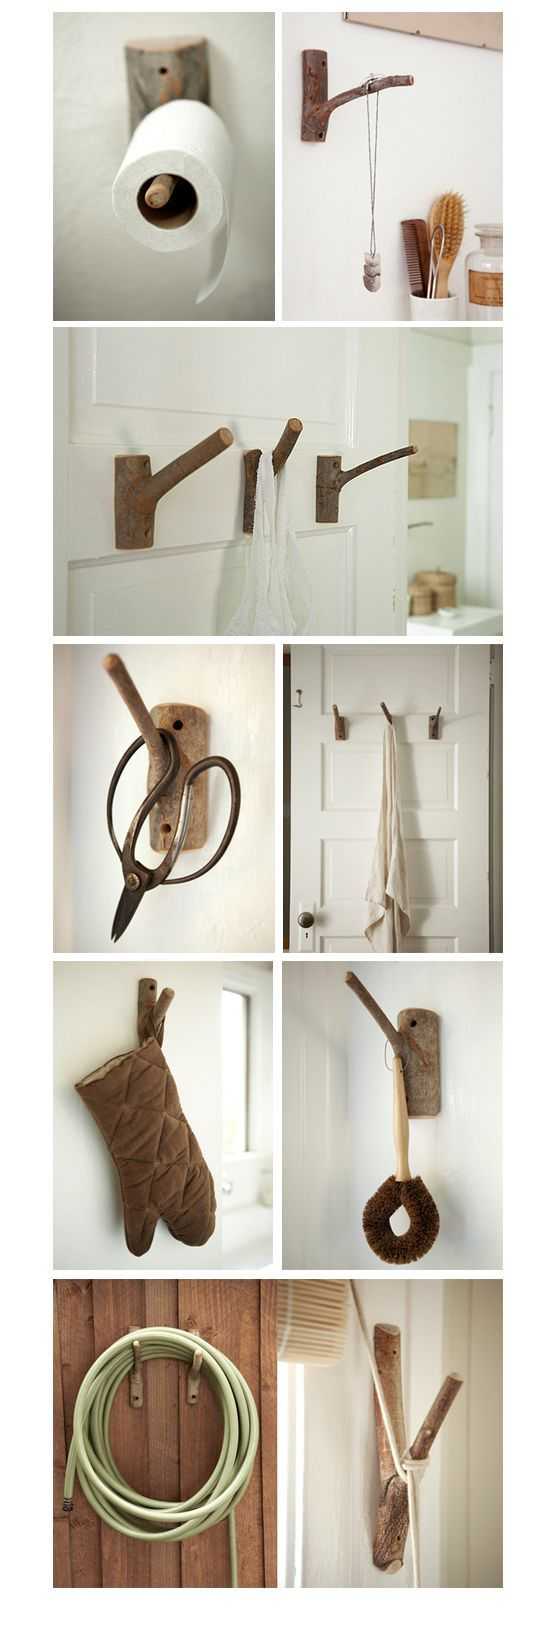 DIY: Branch hooks in wood diy  with Wood Hooks DIY Branches: Decor, Ideas, Craft, Wood Hook, Branch Hooks, Wooden Hook, Tree Branches, Diy Wood, House